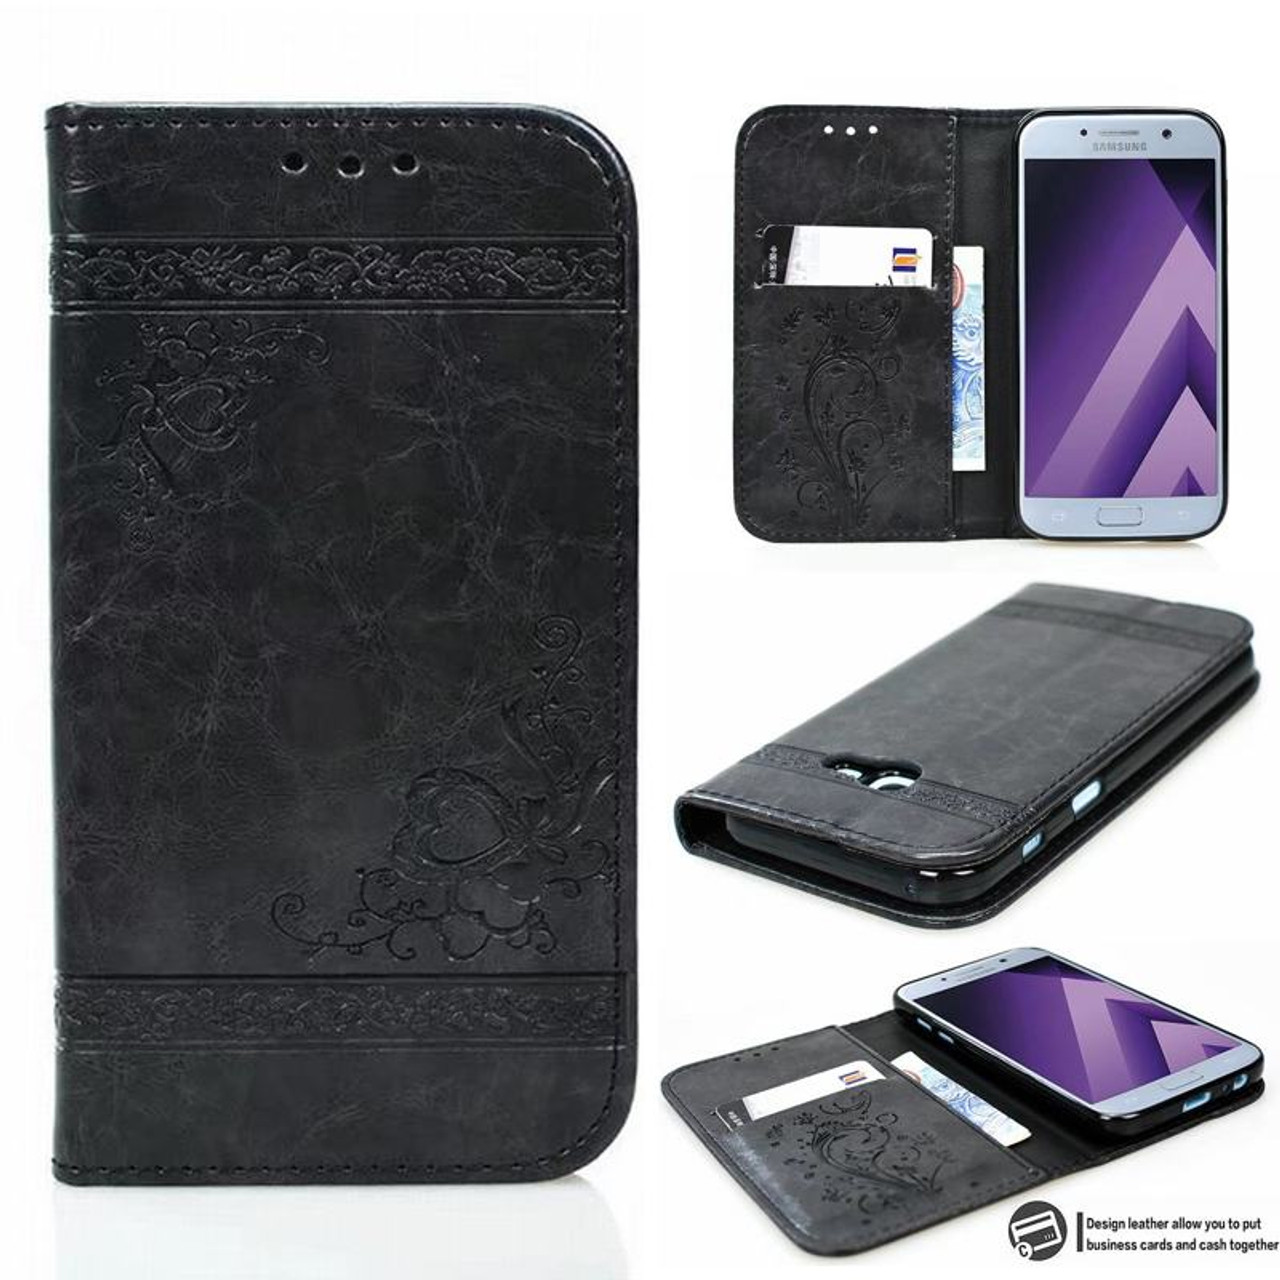 huge discount d7f81 8b12b Embossed Wallet Case For Samsung Galaxy A5 2017 Case Leather Flip Cover  Samsung Galaxy A5 2016 Cover Cases Mobile Phone Shell